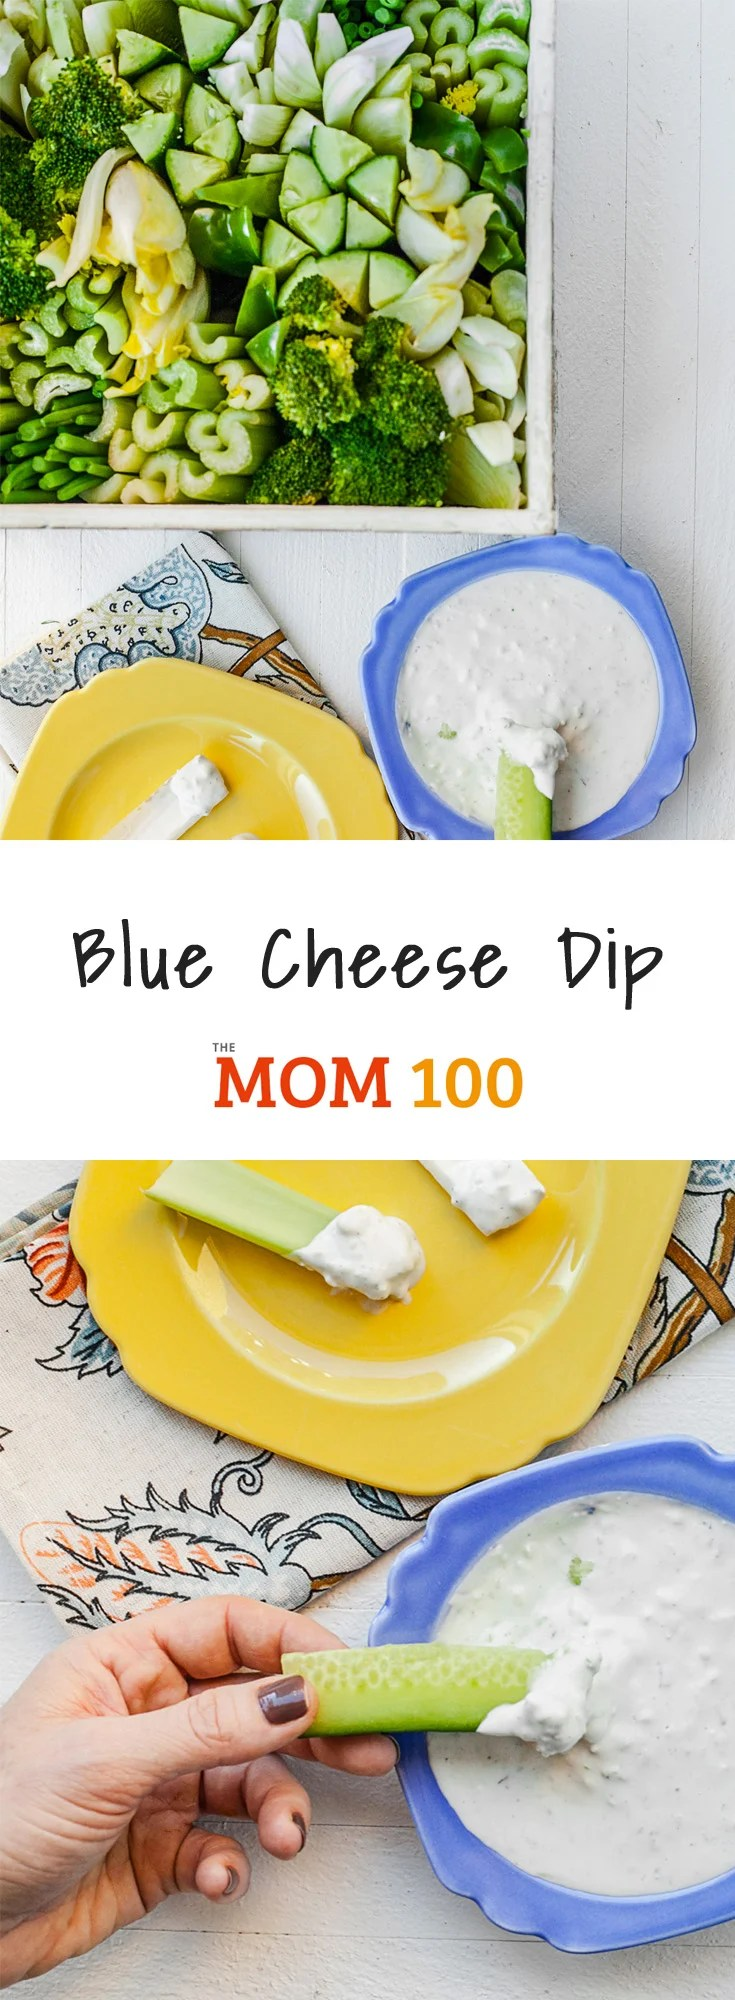 Blue Cheese Dip with All-Green Crudite Basket